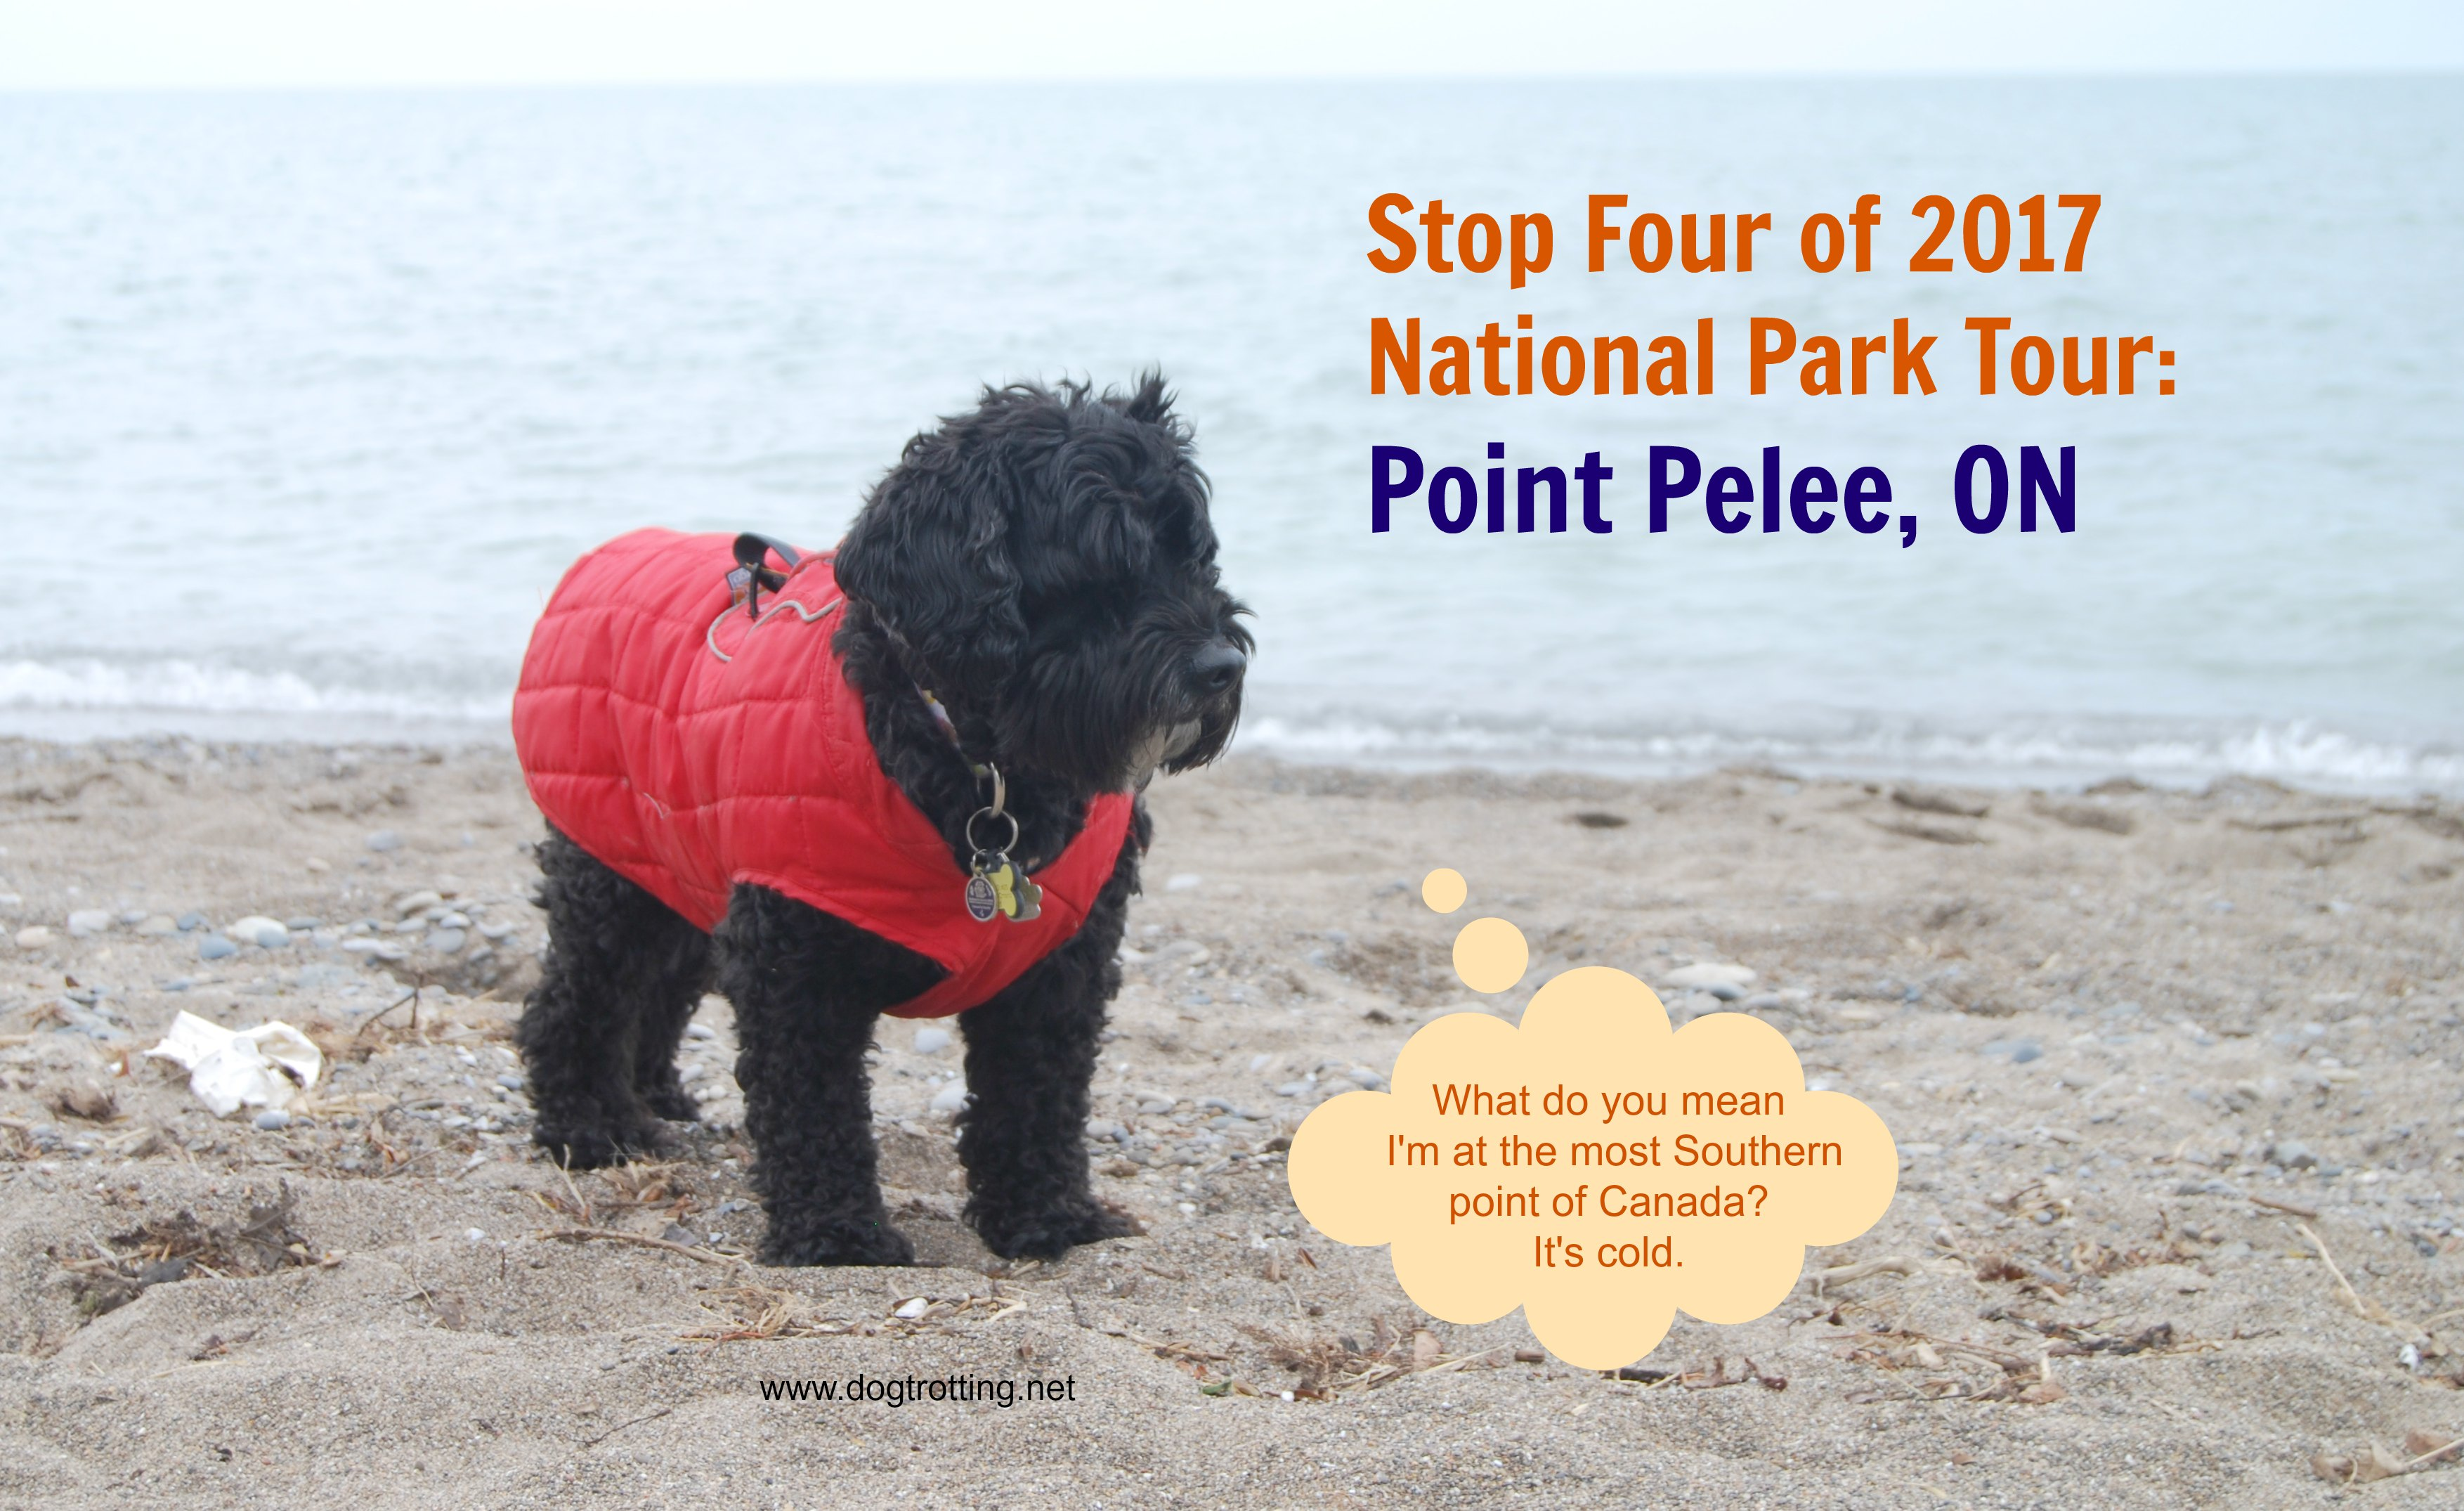 Park Quest Site #4: Dog Day at Point Pelee National Park